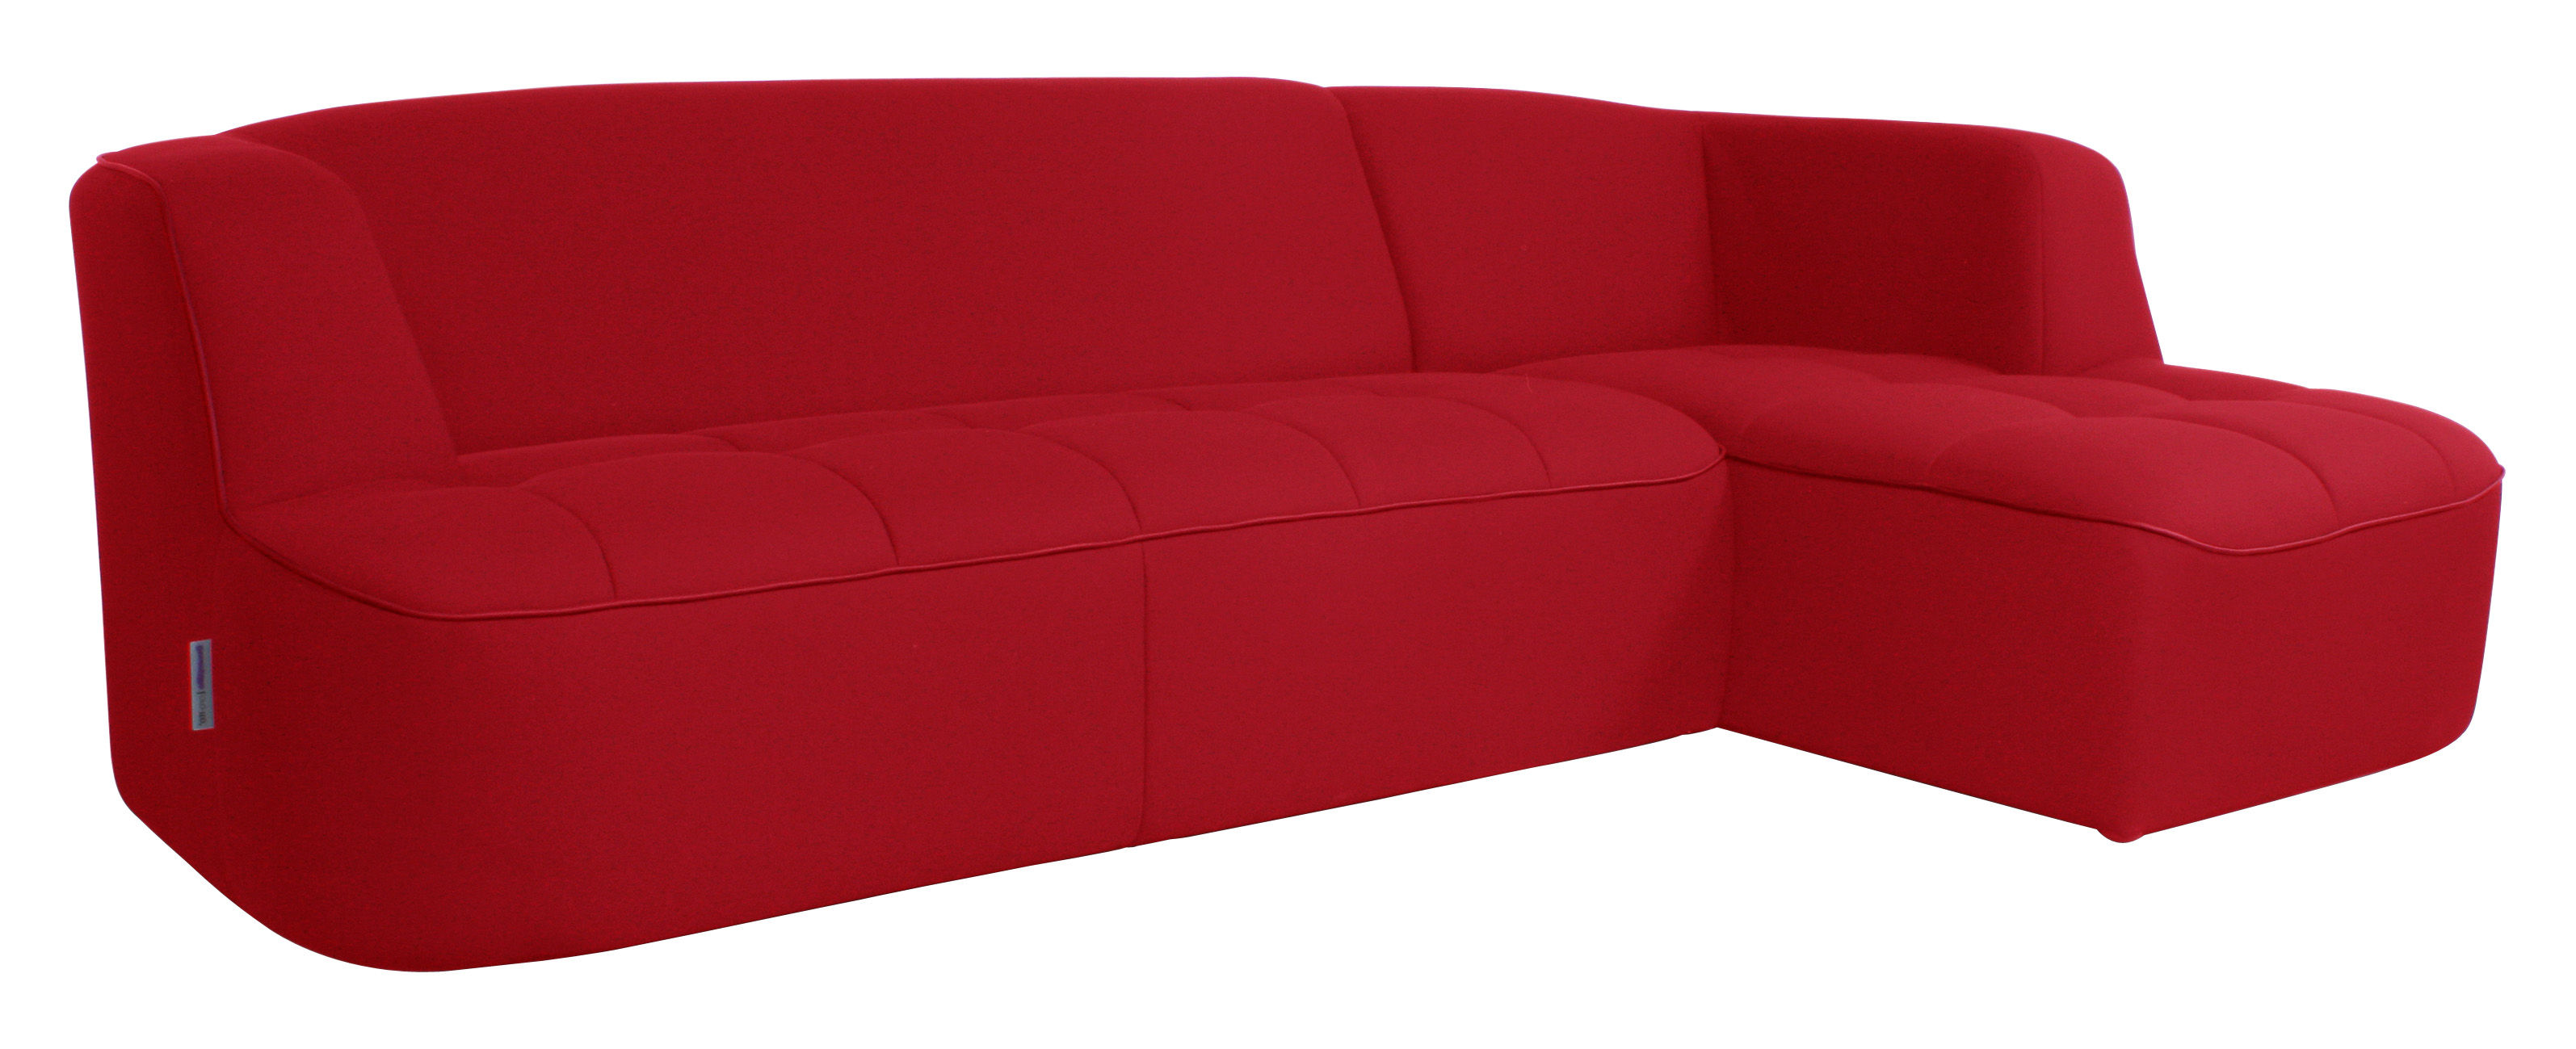 canap d 39 angle chesty corner by ora ito fixe angle droit l 250 cm rouge passepoil rouge. Black Bedroom Furniture Sets. Home Design Ideas